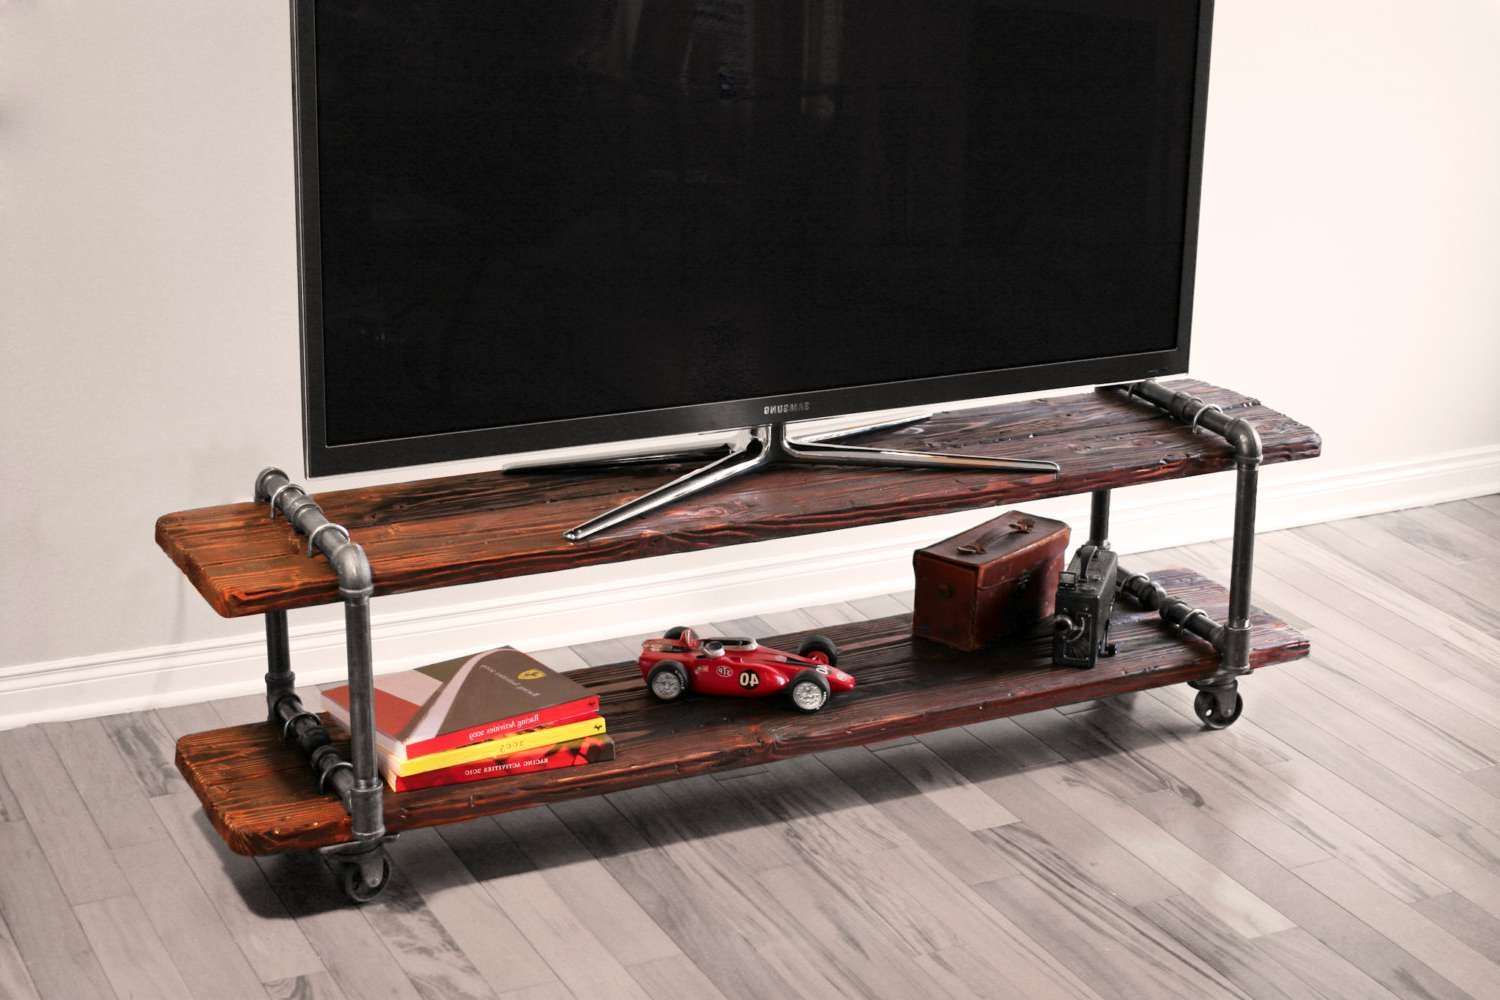 Cool Industrial Style Cast Iron Pipe And Wood Diy Tv Stand With In Industrial Style Tv Stands (View 3 of 15)